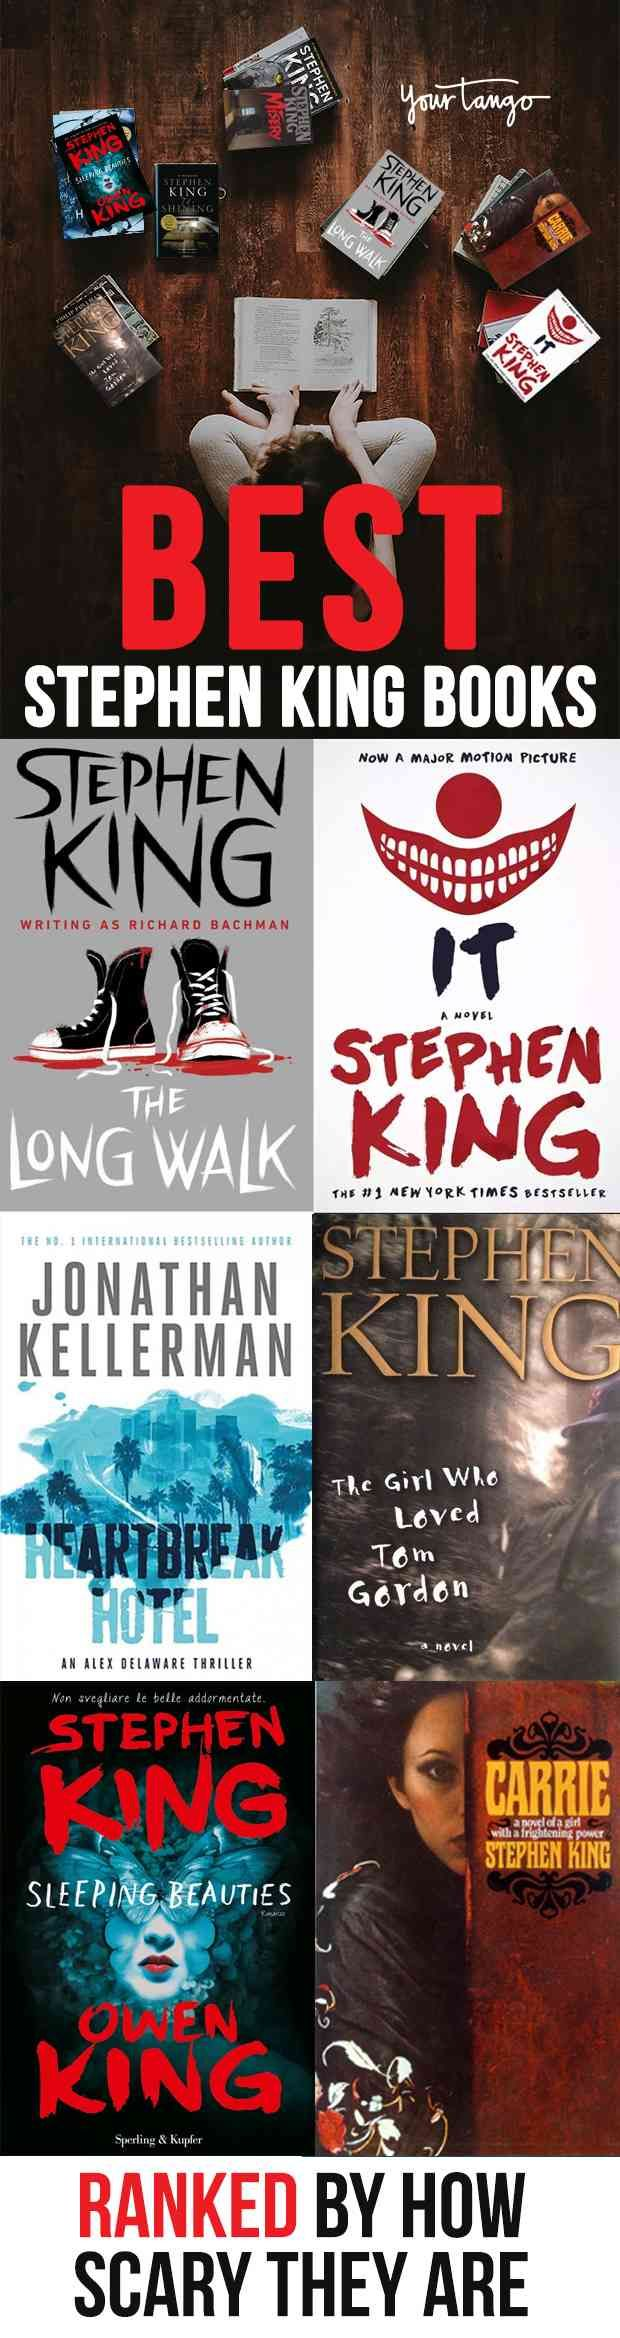 Every Single Stephen King Novel Ranked By How Likely They Are To